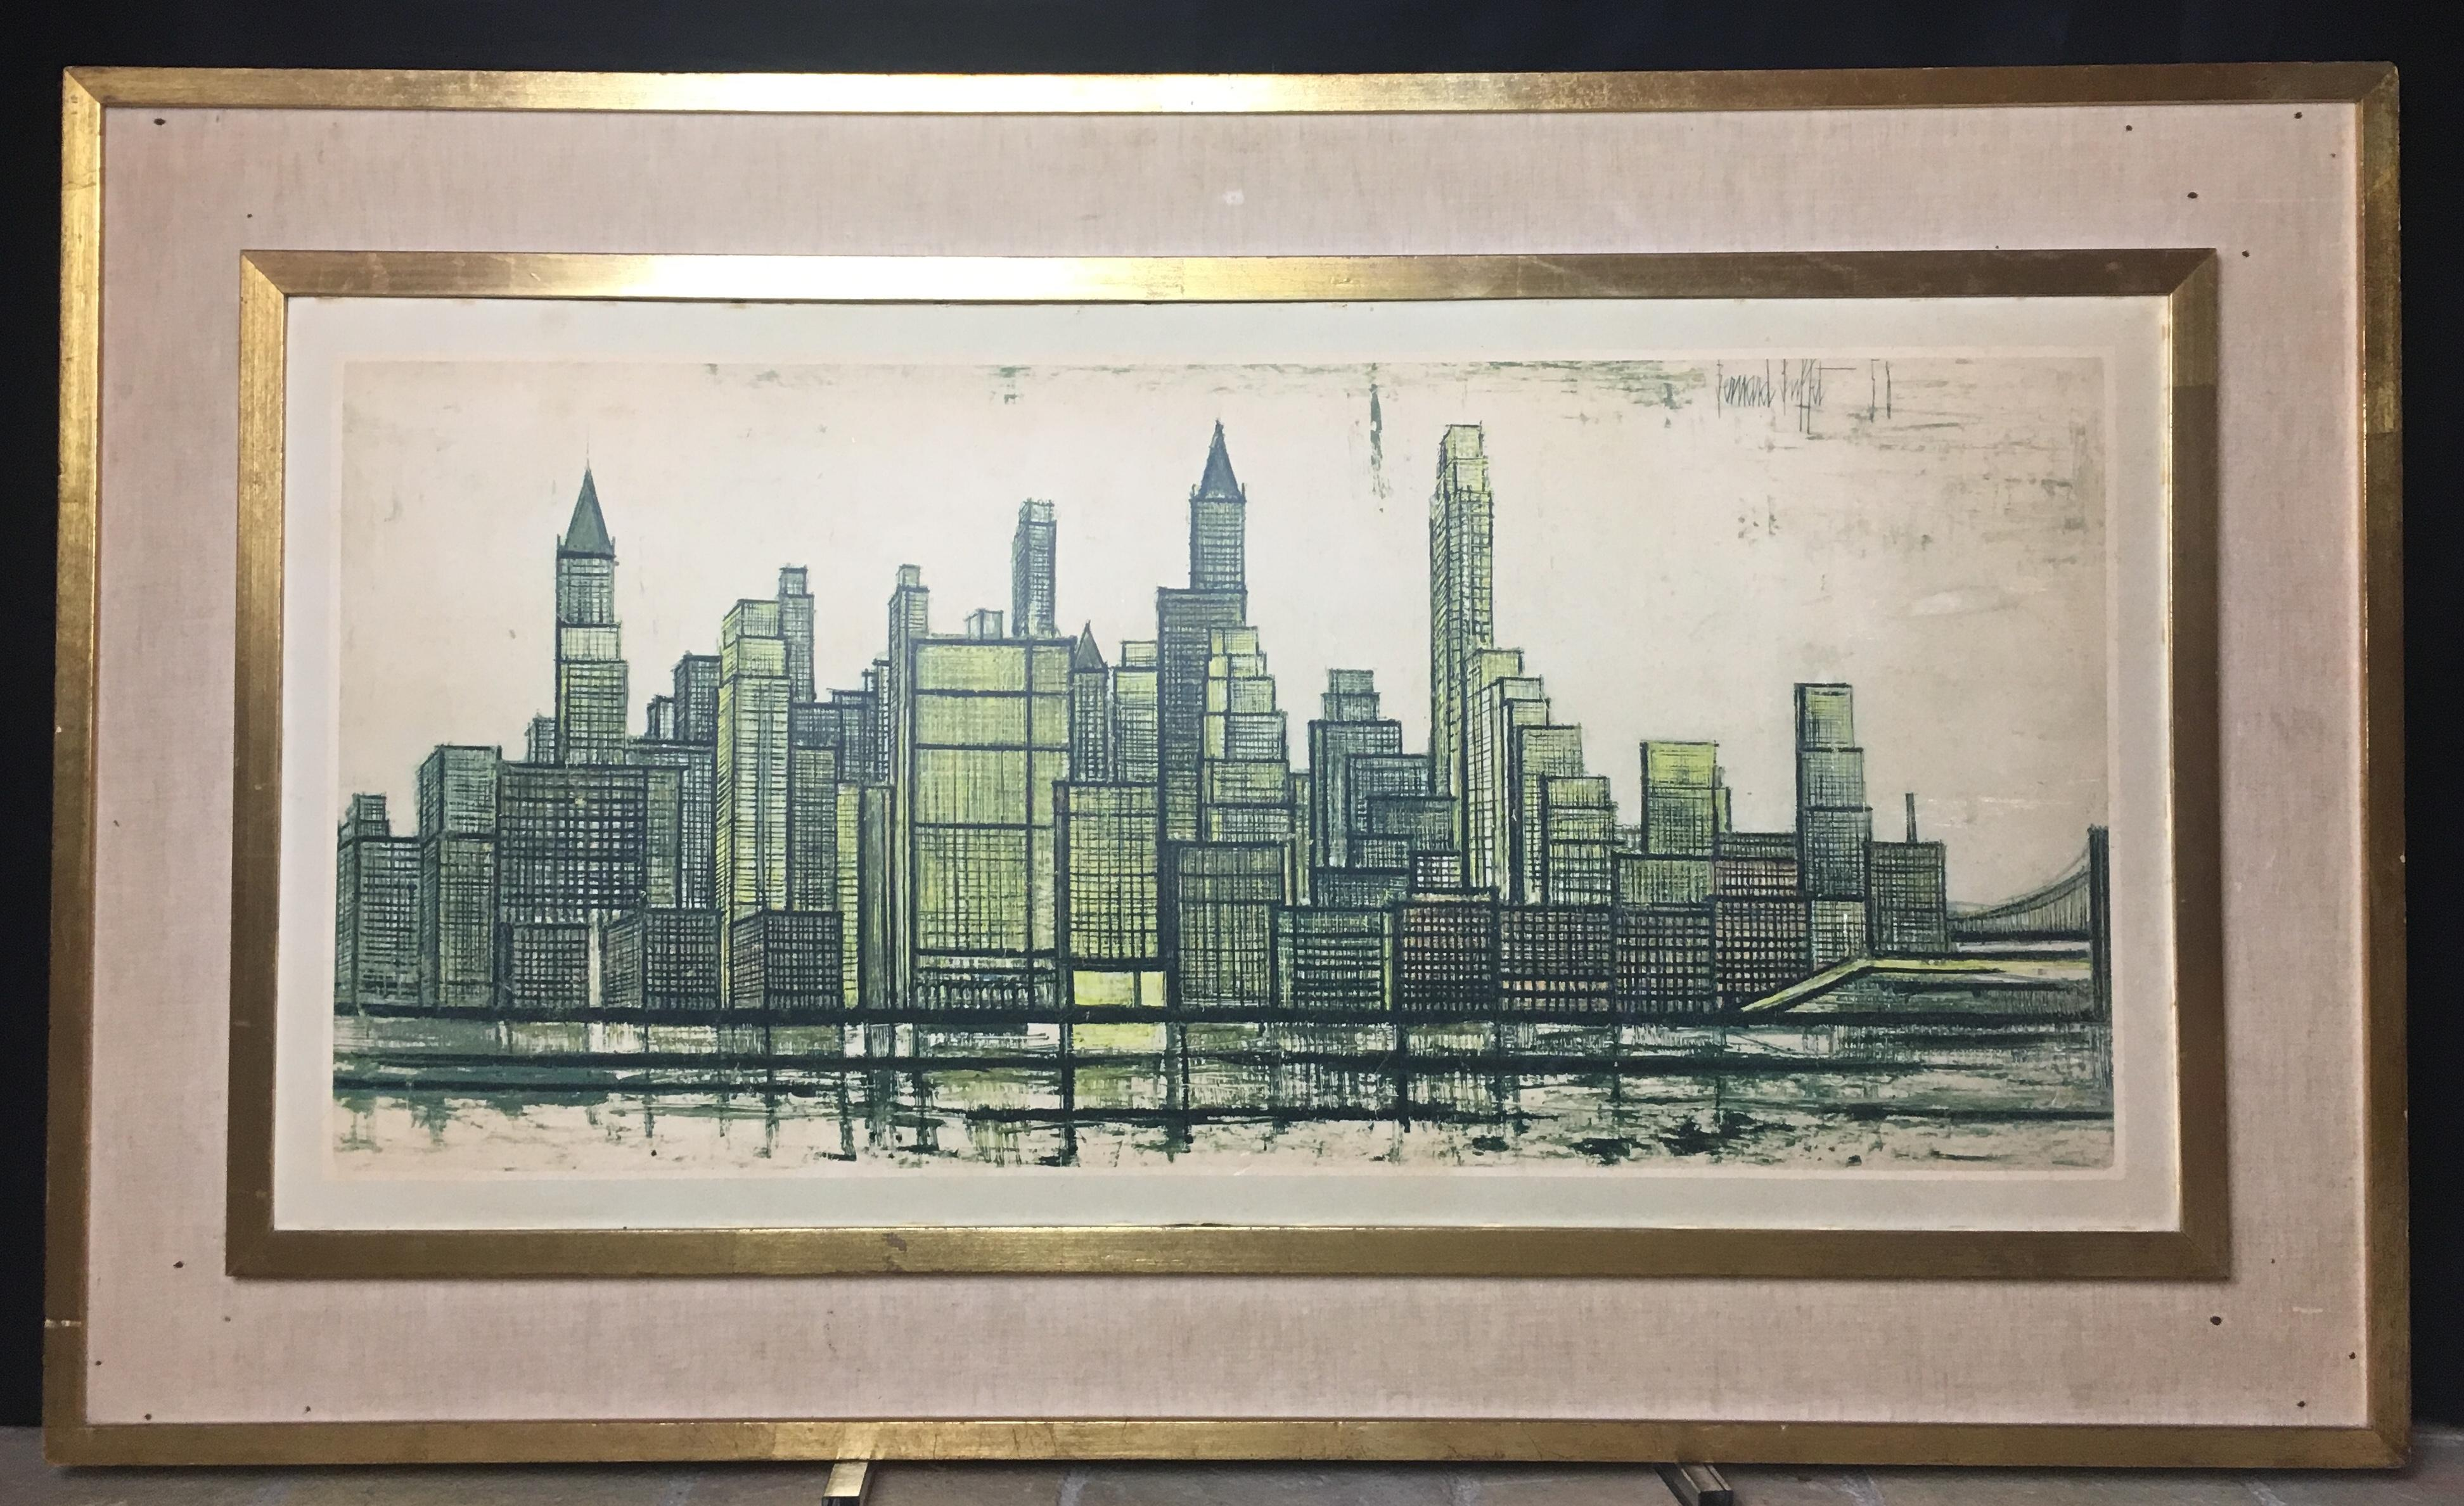 Awe Inspiring Midcentury Bernard Buffet New York Skyline Limited Edition Drypoint Print Home Interior And Landscaping Ferensignezvosmurscom